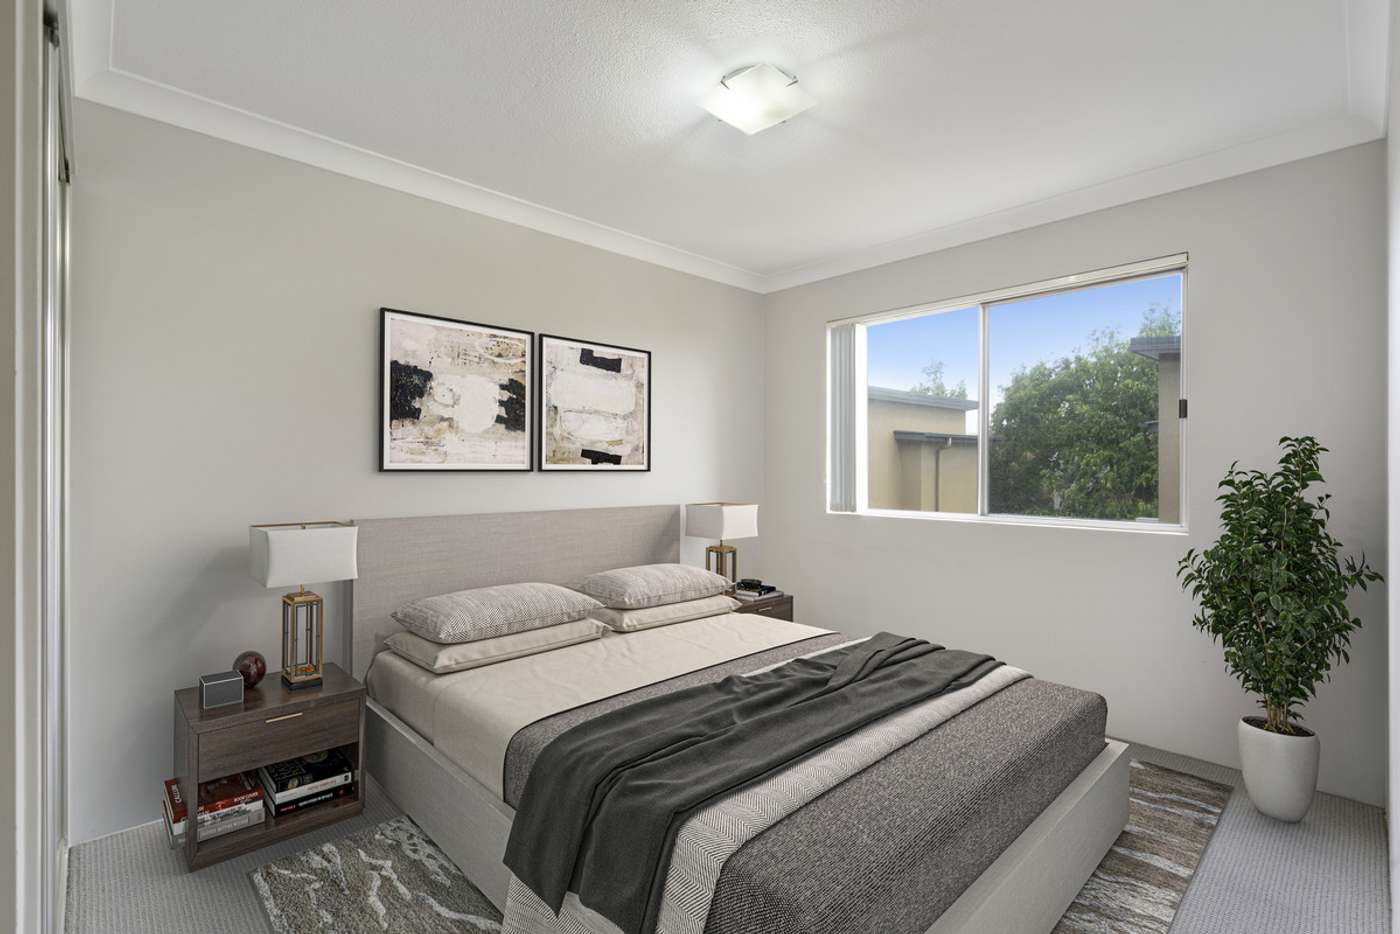 Sixth view of Homely unit listing, 11/22 Oleander Avenue, Biggera Waters QLD 4216